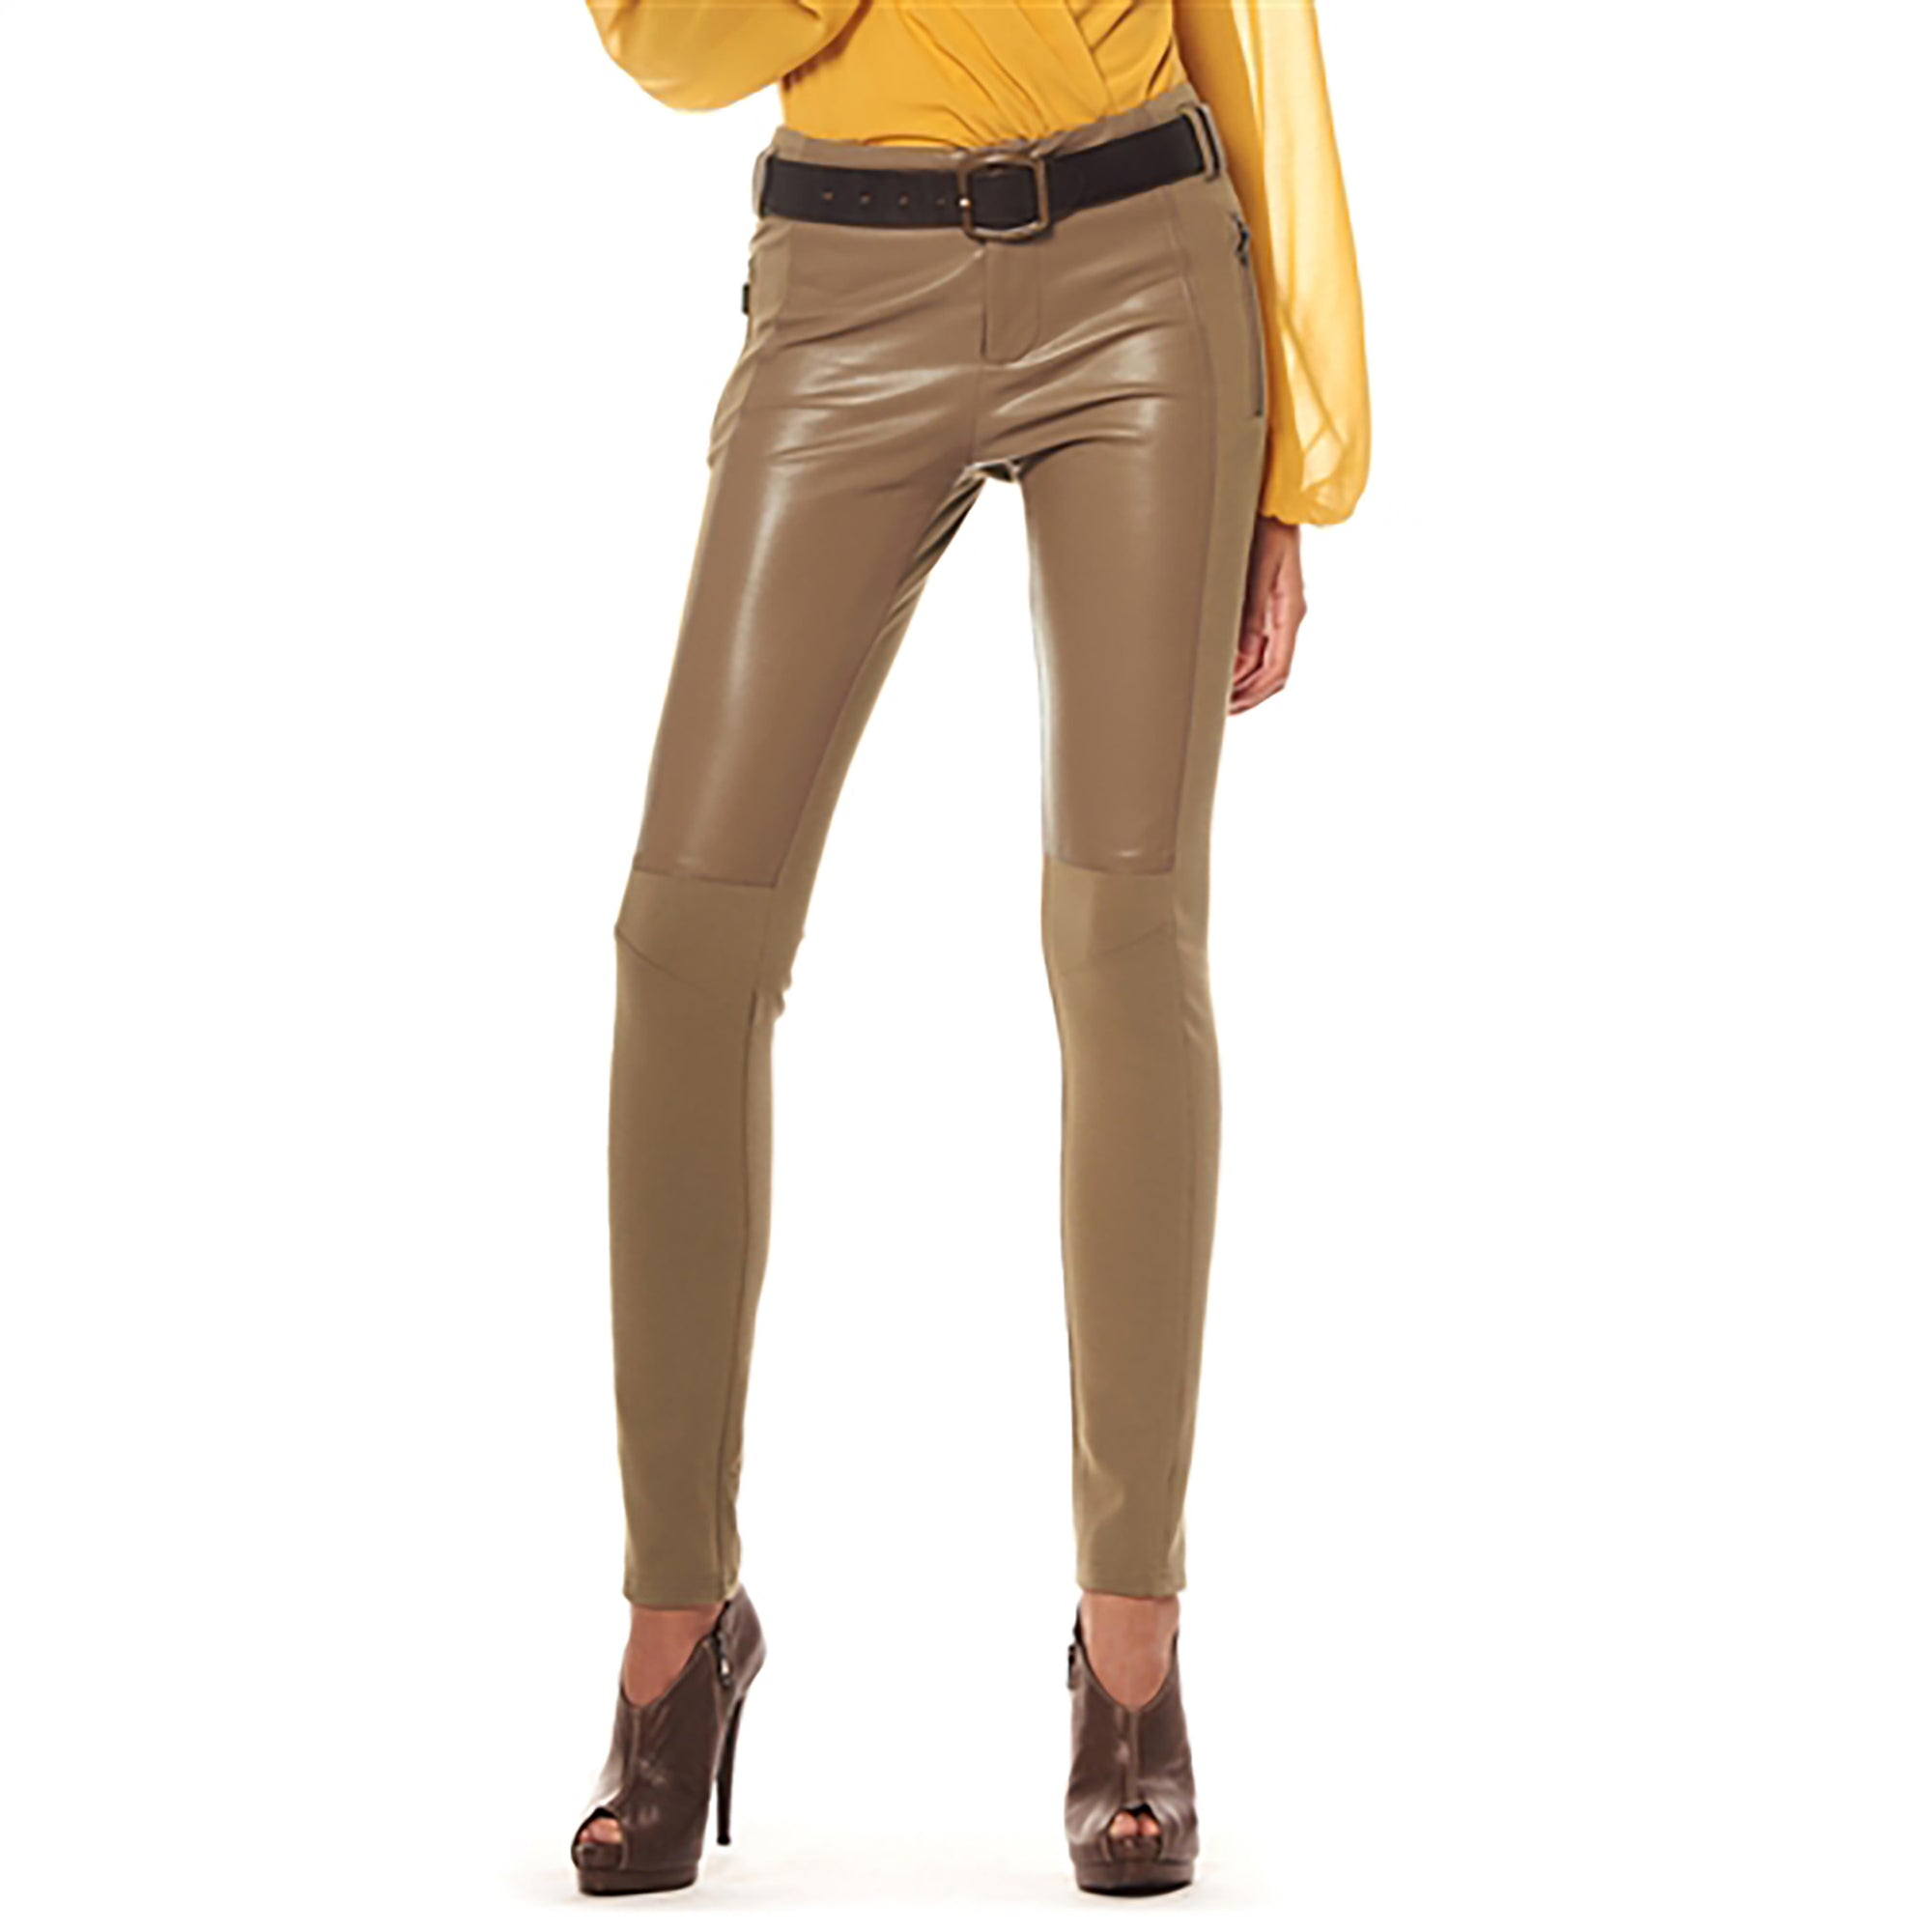 Faux Leather Front Pants/Leggings